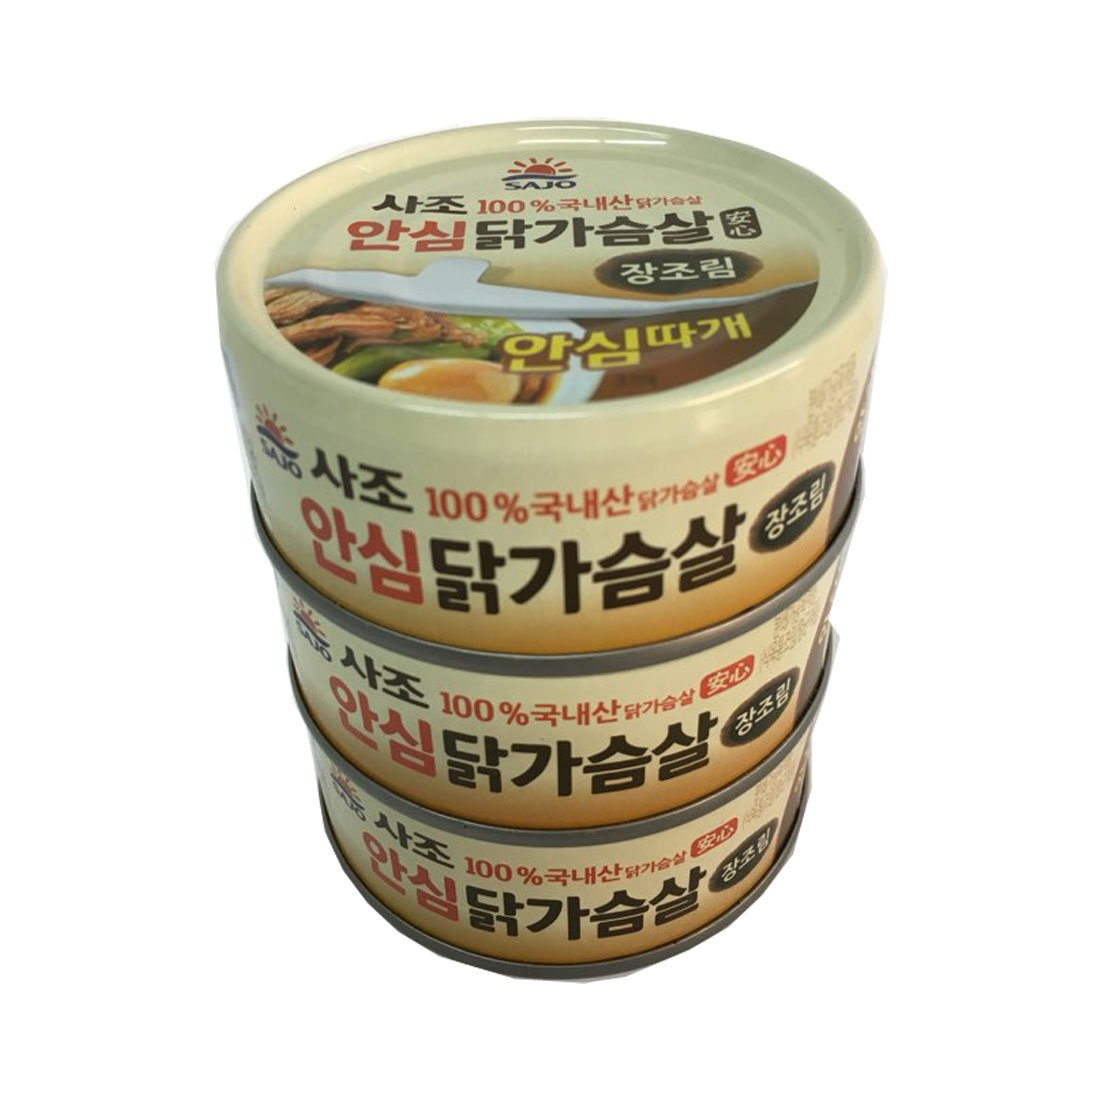 [SAJO] Korean Food canned chicken breast(Soy Sauce) (3.17oz x 3pack/90g x 3pack) + SafeZone Mask (2pcs)